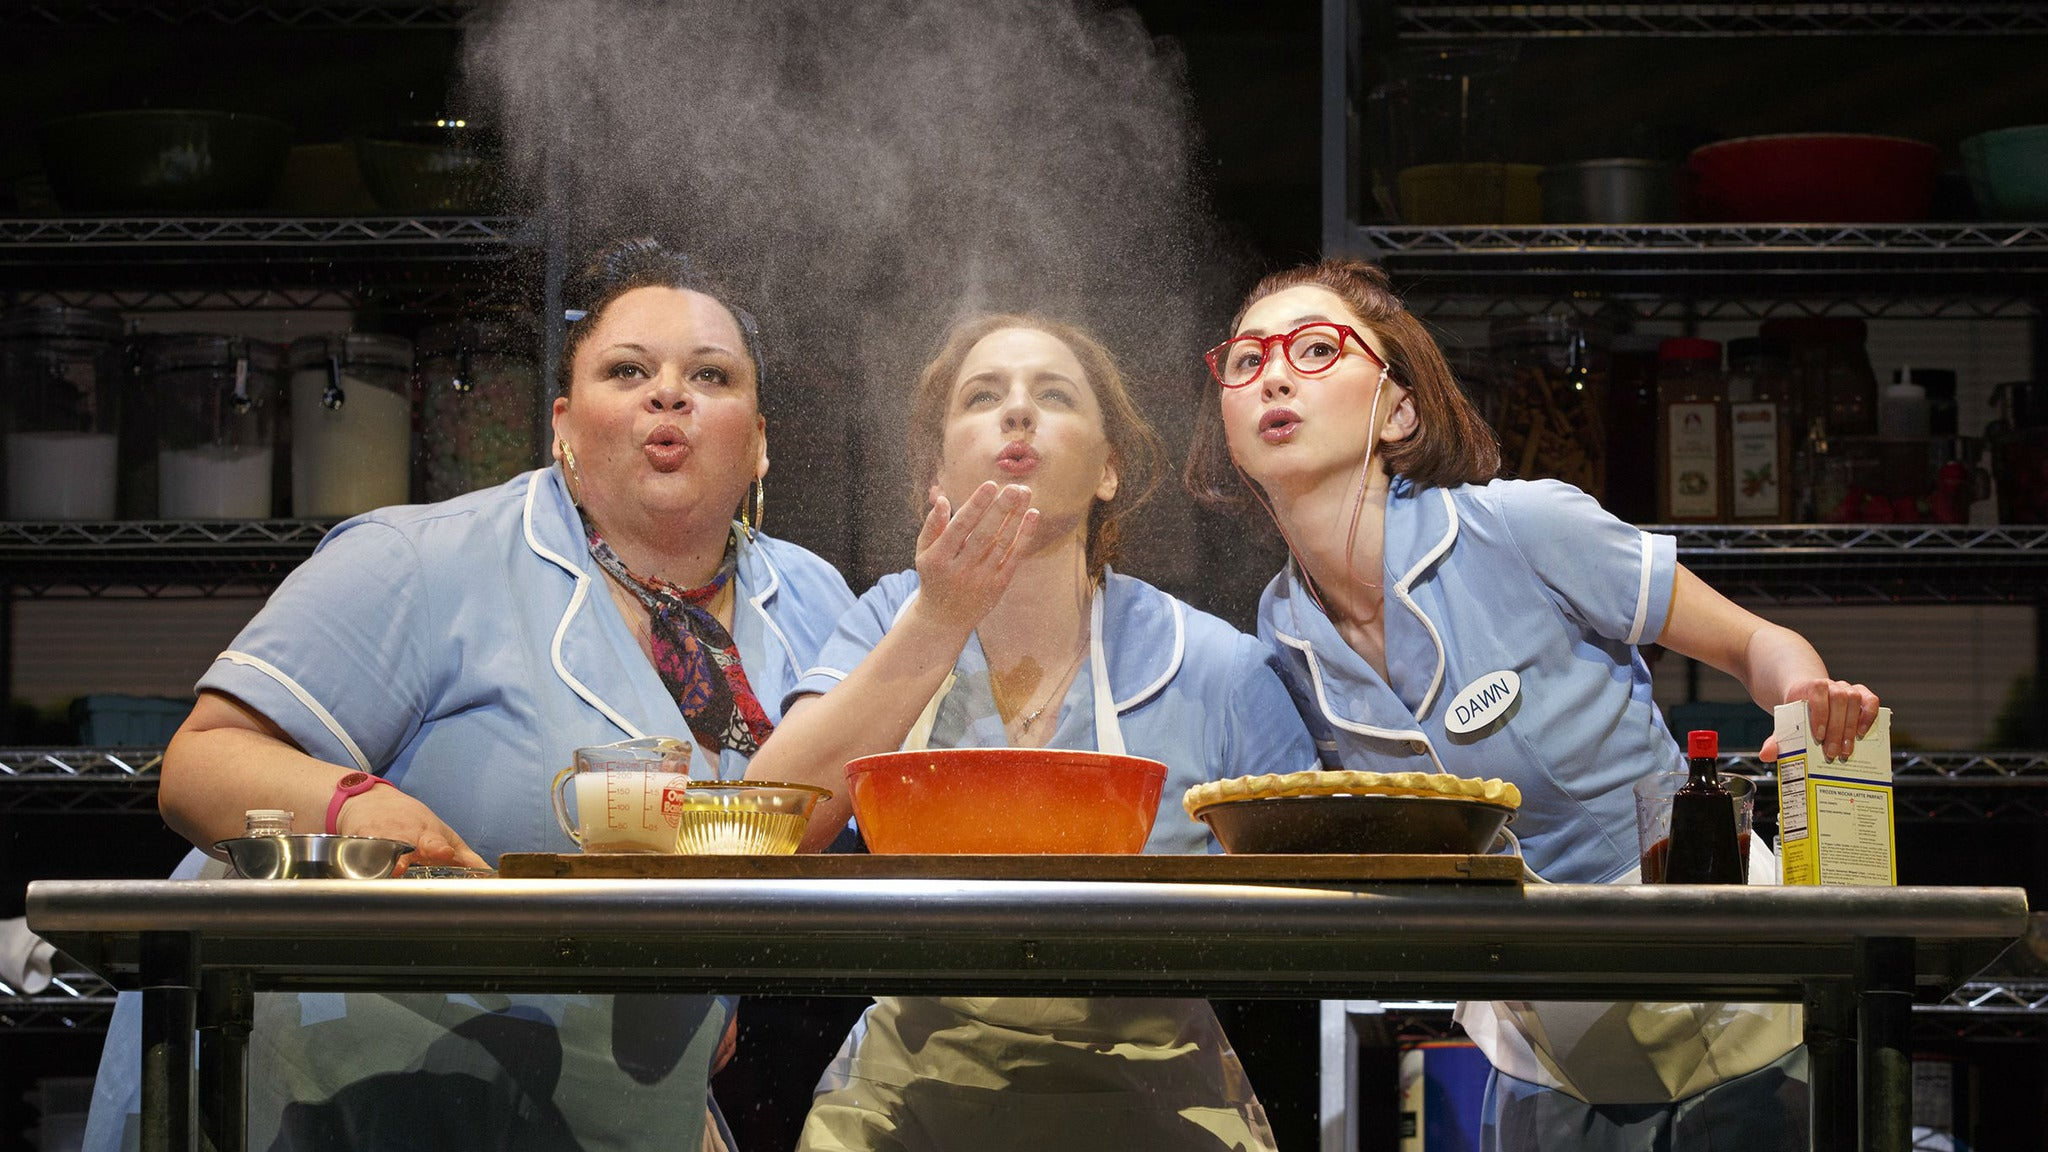 Waitress at Pantages Theatre - CA - Los Angeles, CA 90028